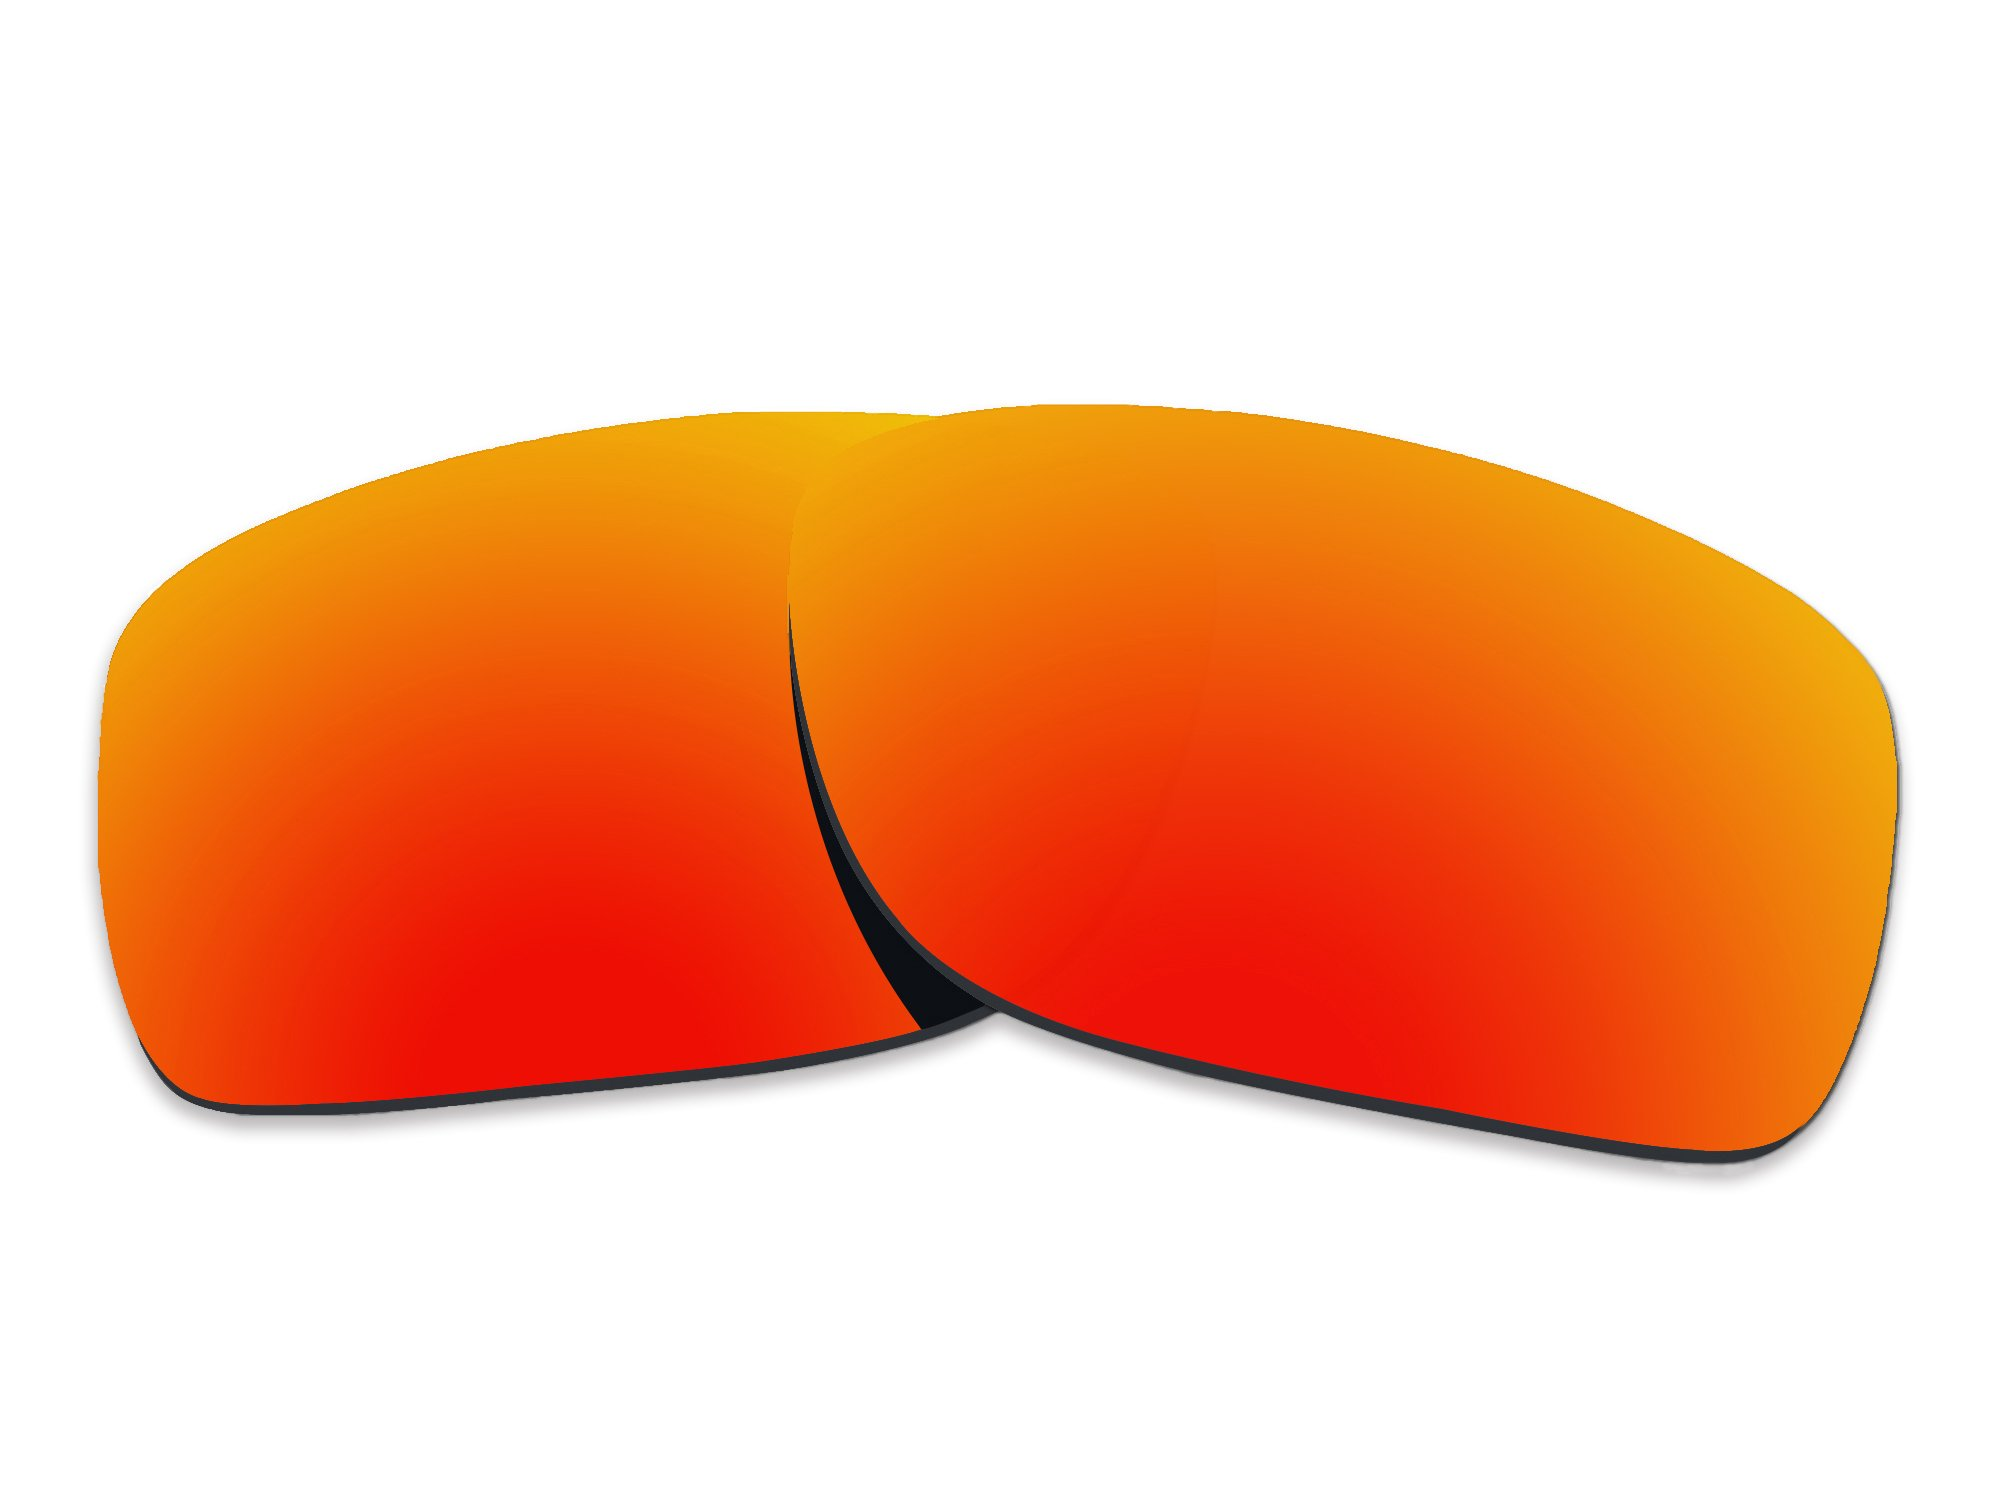 COLOR STAY LENSES 2.0mm Thickness Polarized Replacement Lenses for Oakley Turbine XS OJ9003 Fire Red Mirror Coatings by COLOR STAY LENSES